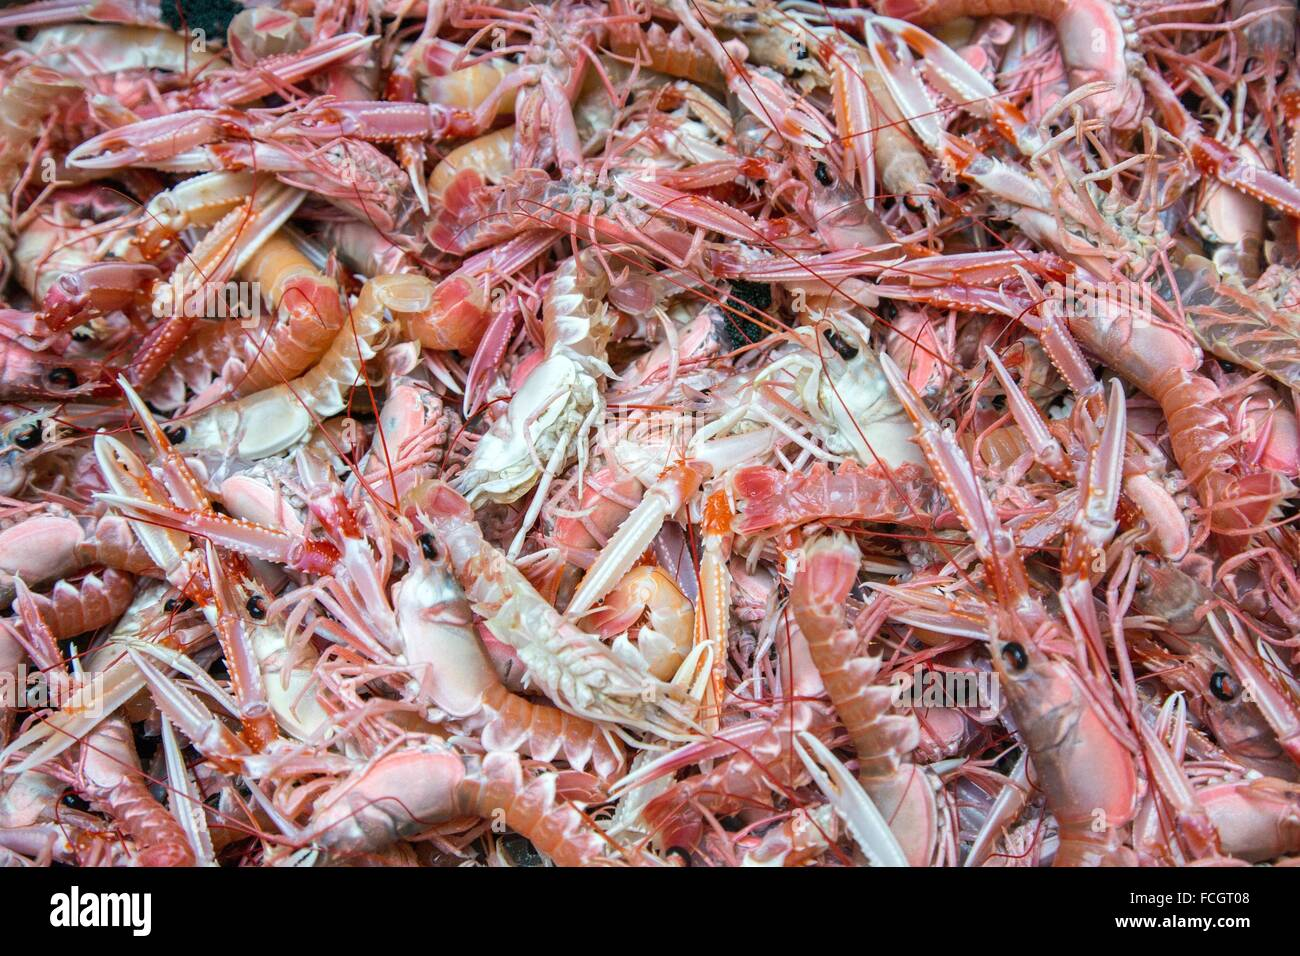 FRESHLY CAUGHT LIVE PRAWNS, SEA FISHING ON THE SHRIMP TRAWLER 'QUENTIN-GREGOIRE' OFF THE COAST OF SABLES - Stock Image